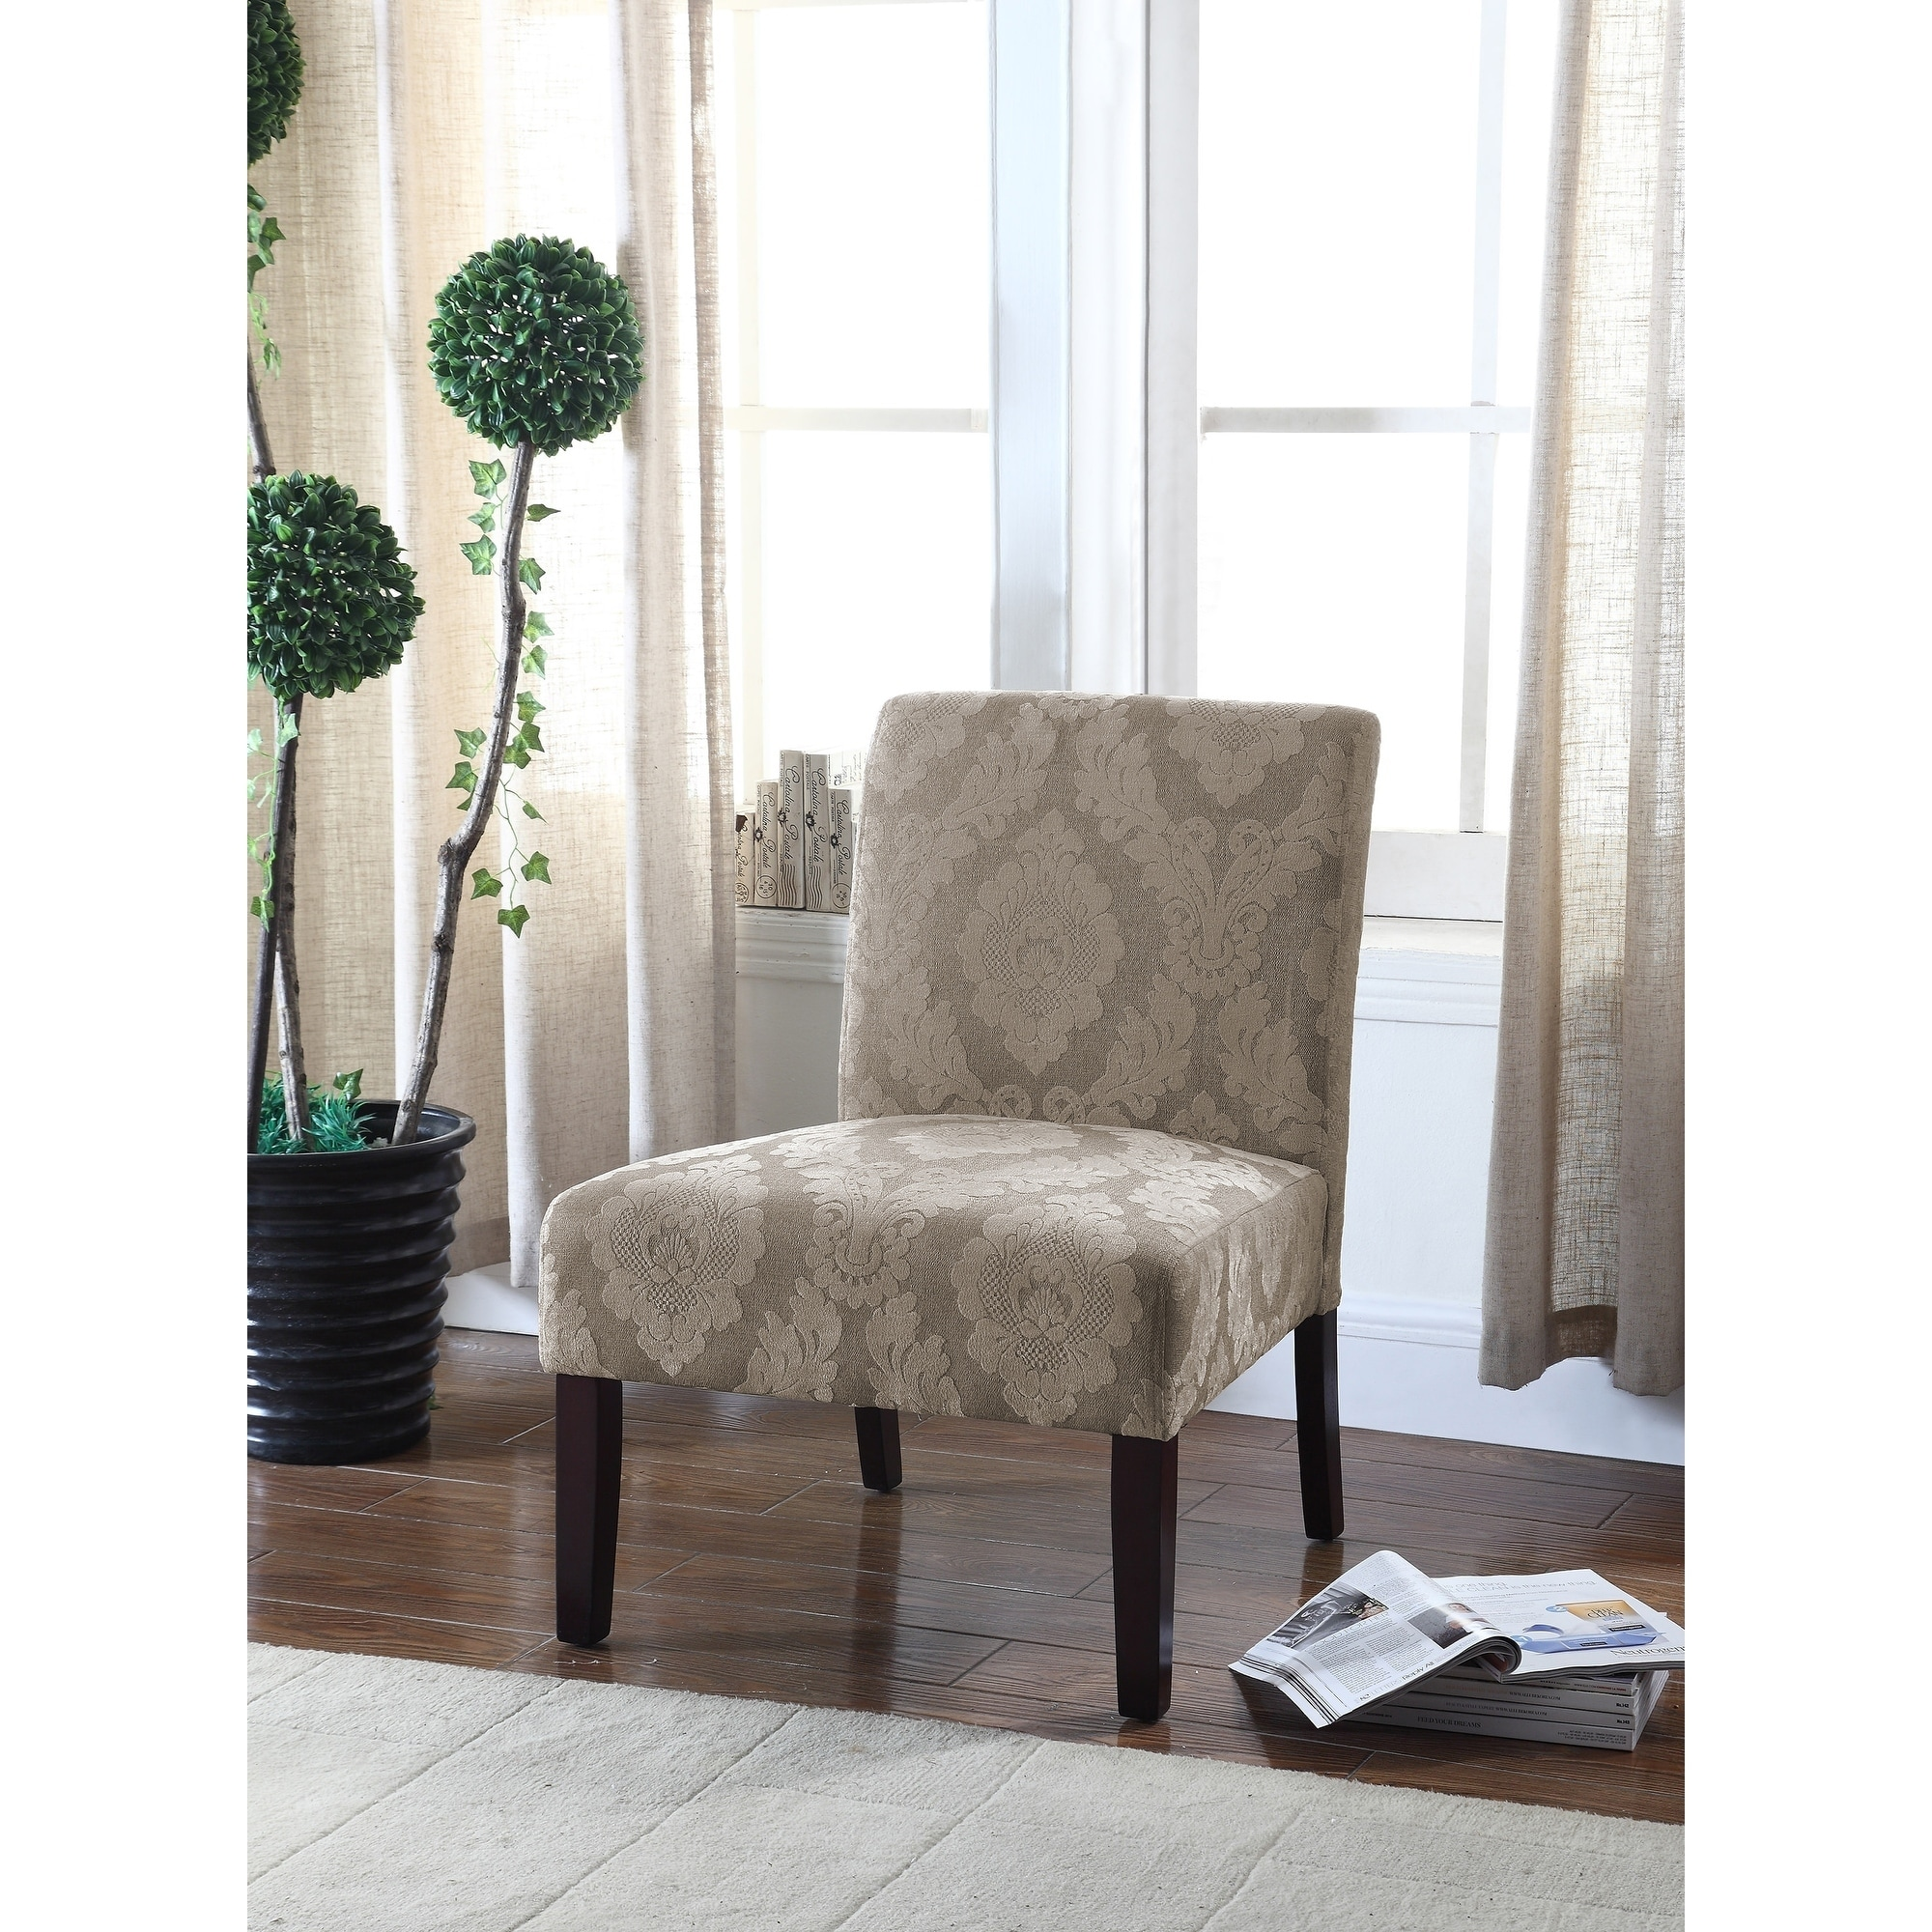 Picture of: Best Master Furniture Beige Floral Accent Chair Overstock 18843679